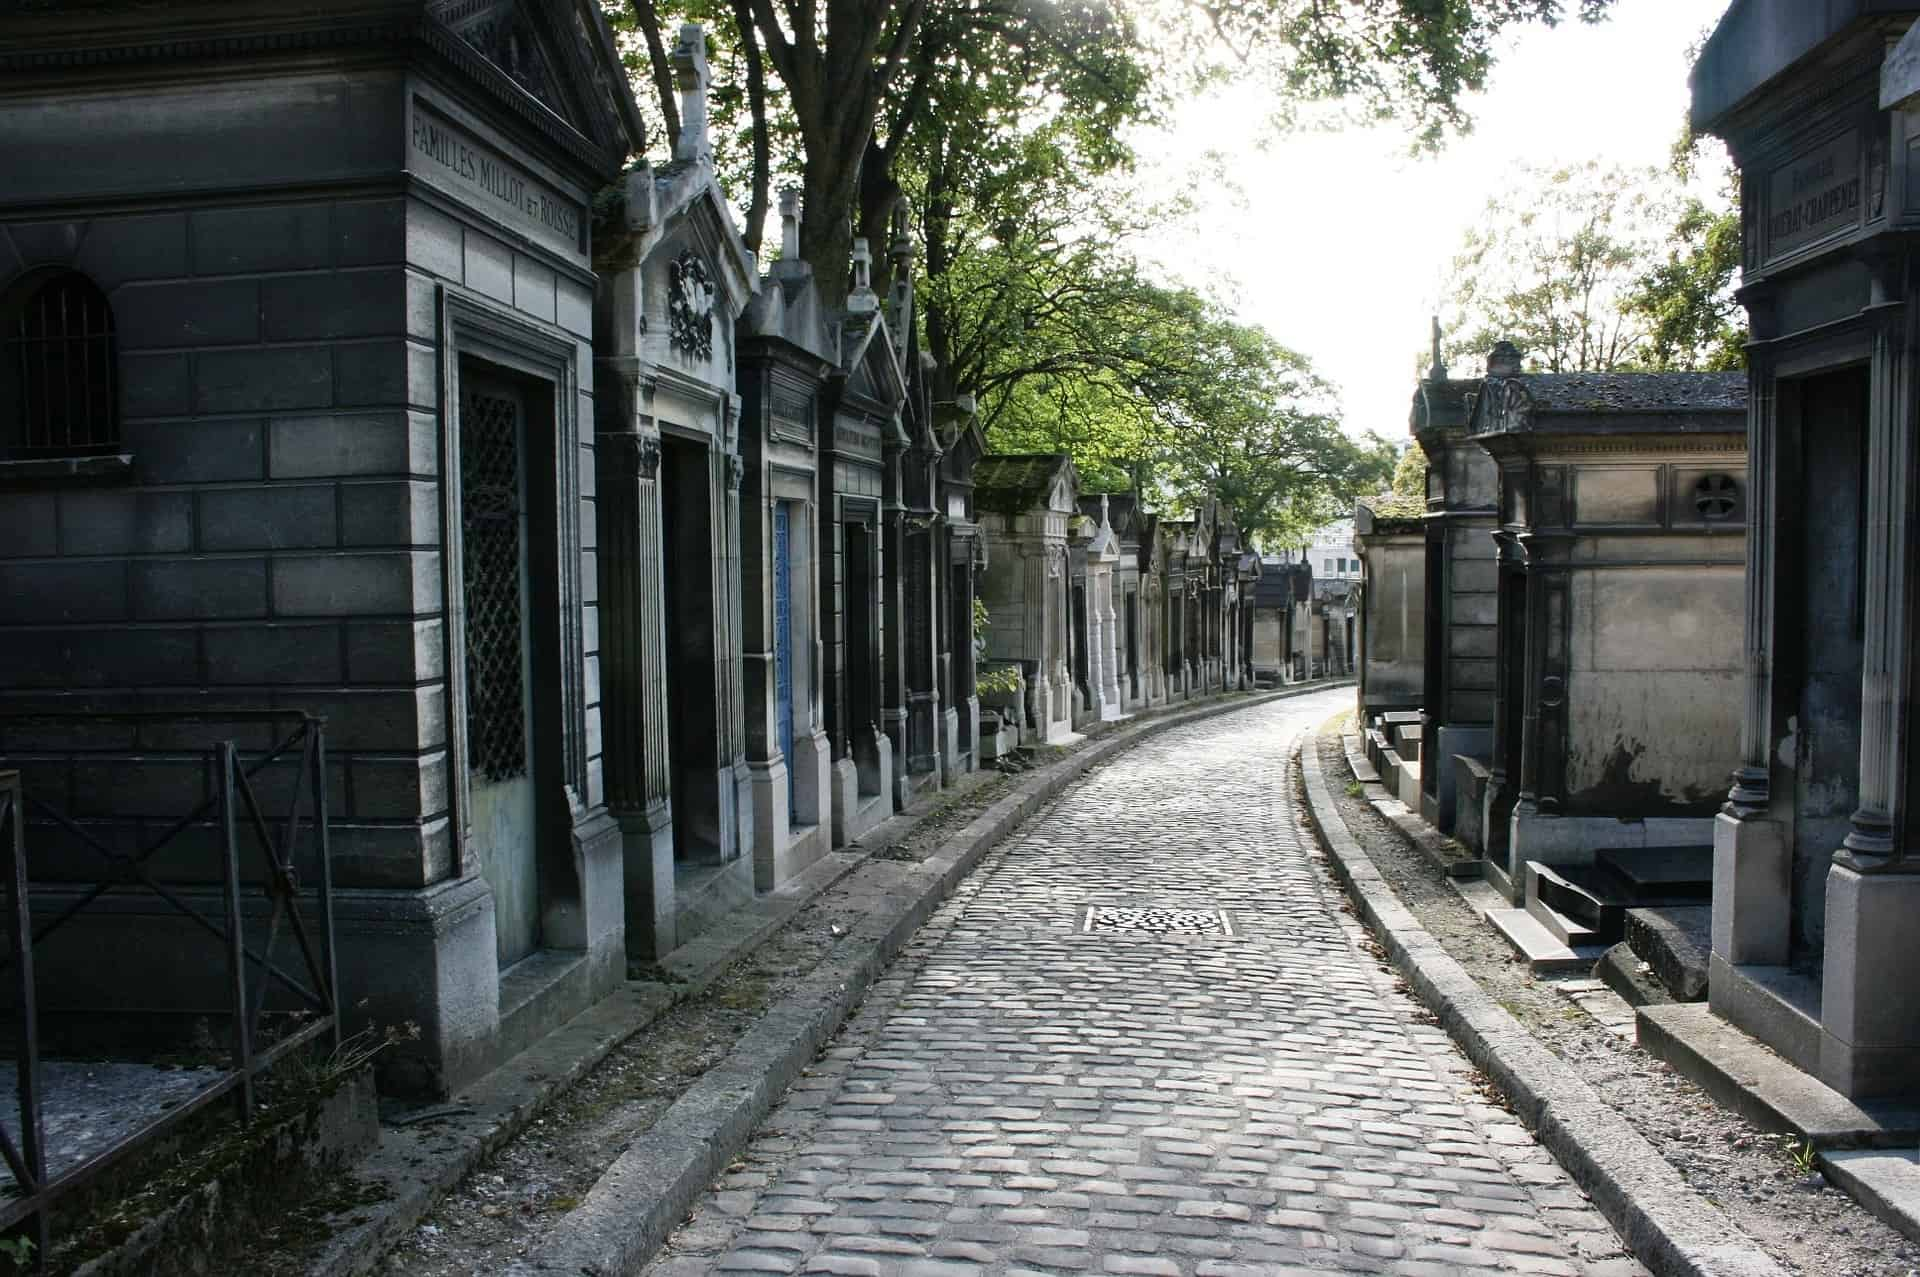 Everyone is searching for grave of Jim Morrison, but the unusual thing to do in Paris is to search for Jean-Paul Sartre et Simone de Beauvoir tomb - Secret things to do in Paris